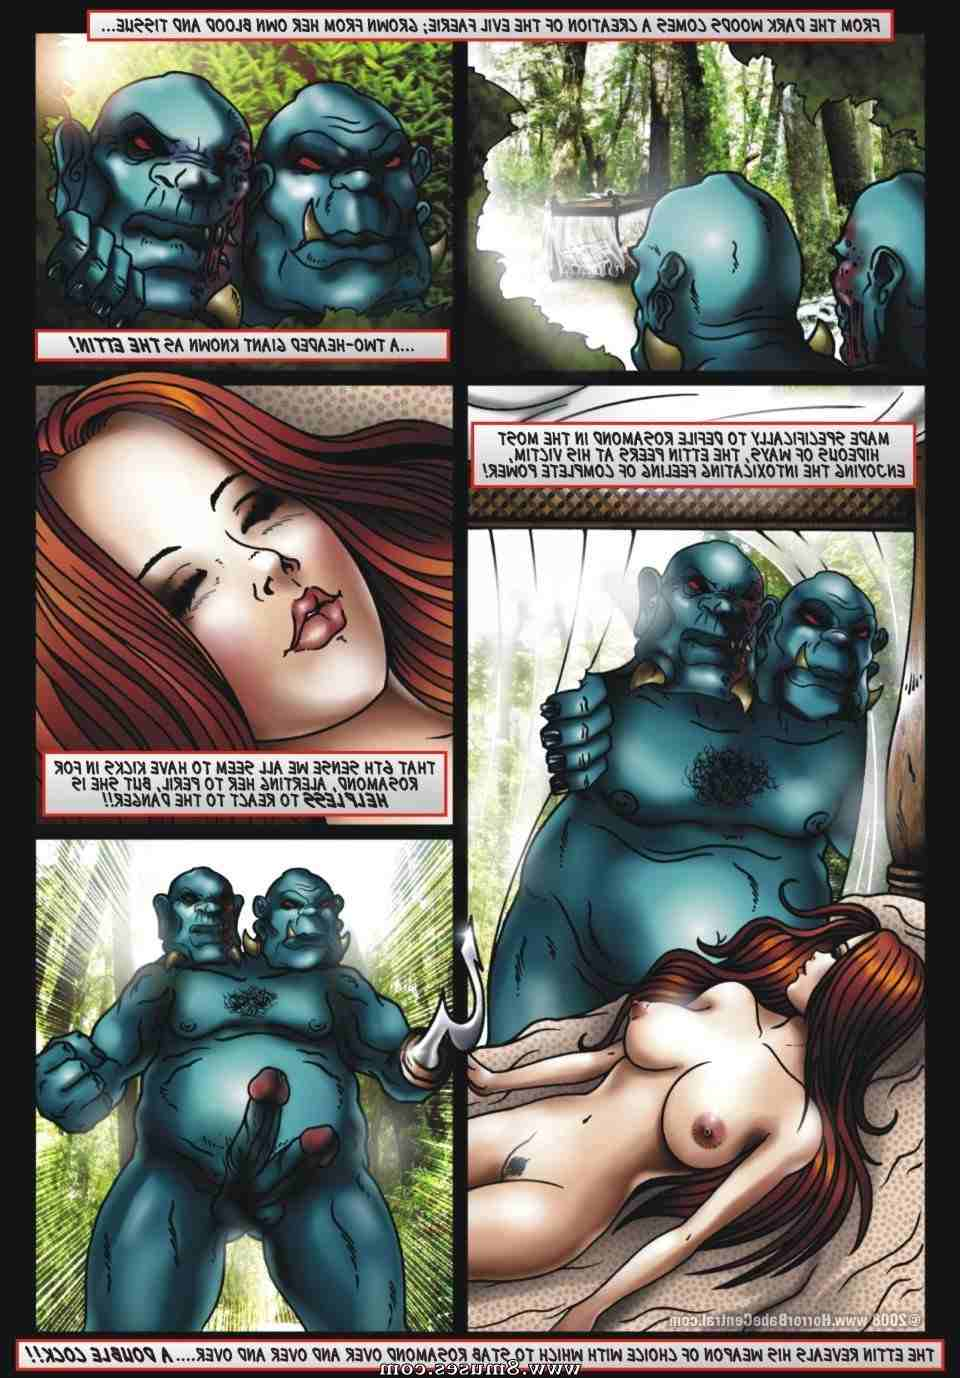 Central-Comics/Horror-Babe-Central/Fable-of-Fright Fable_of_Fright__8muses_-_Sex_and_Porn_Comics_67.jpg